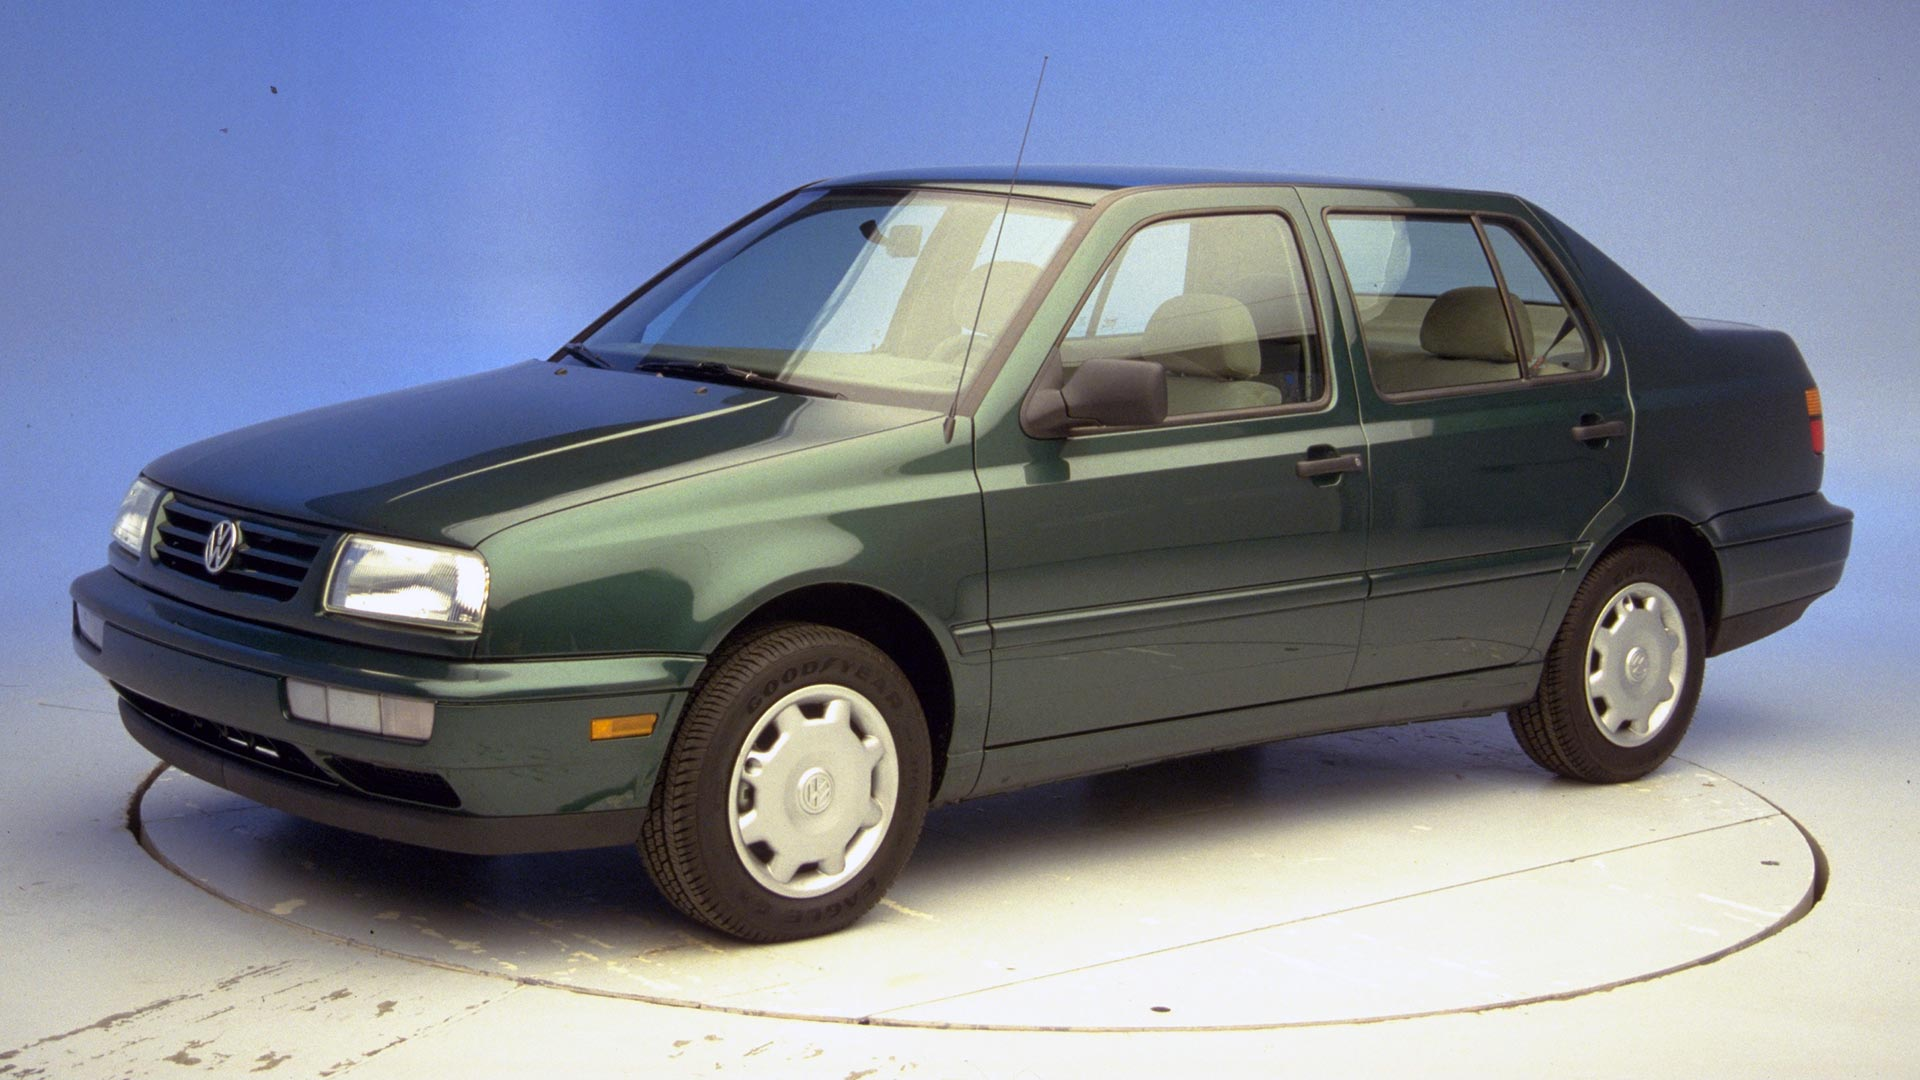 1997 Volkswagen Jetta 4-door sedan